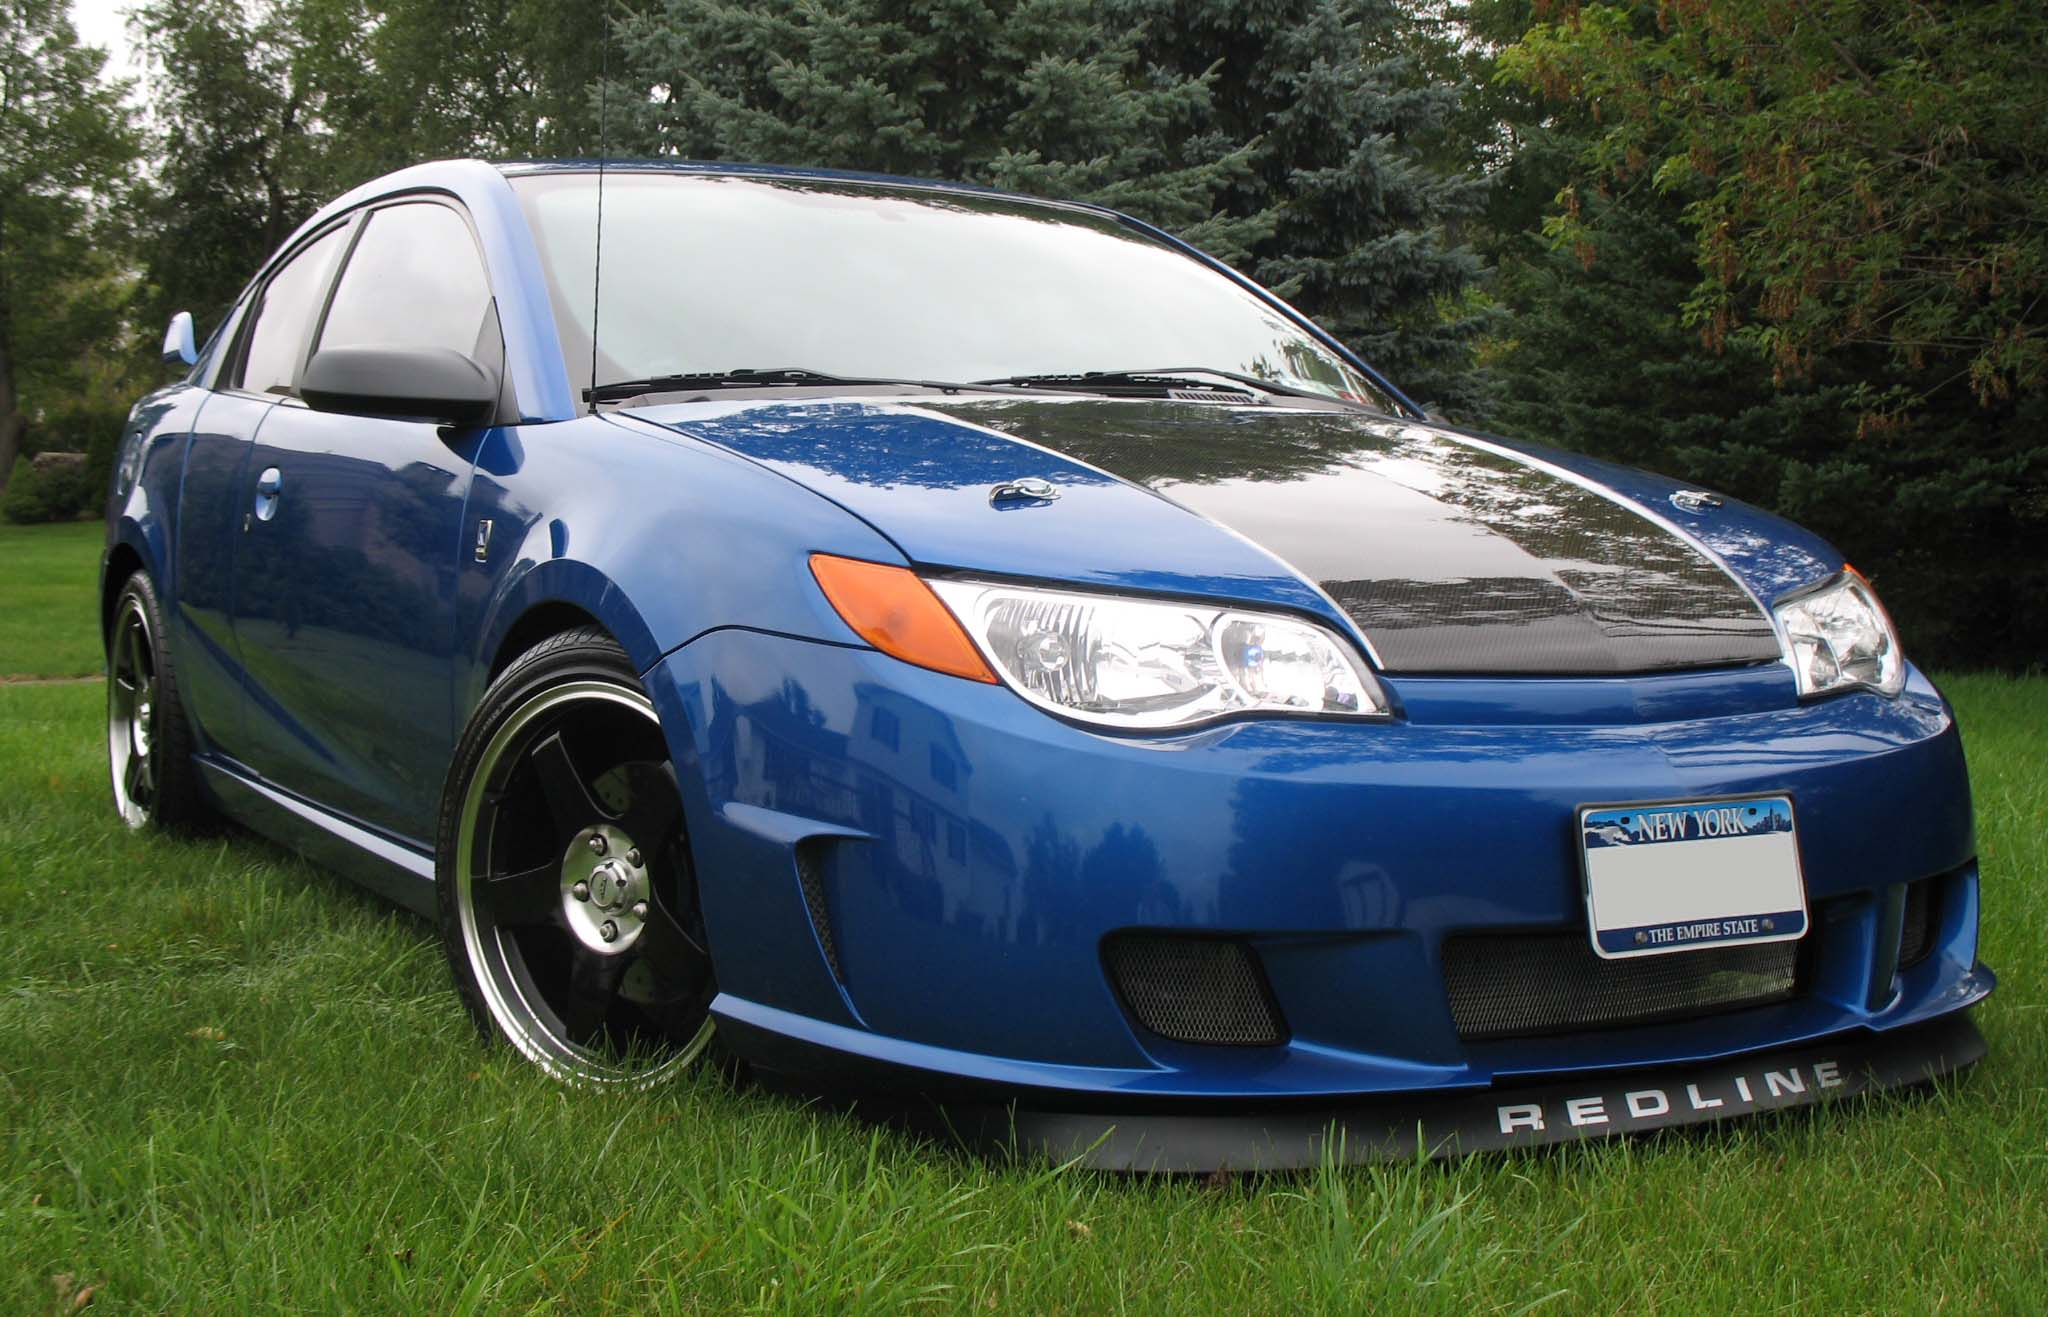 2004 modded Ion Redline For Sale in Upstate New York-rlf-front-passenger.jpg